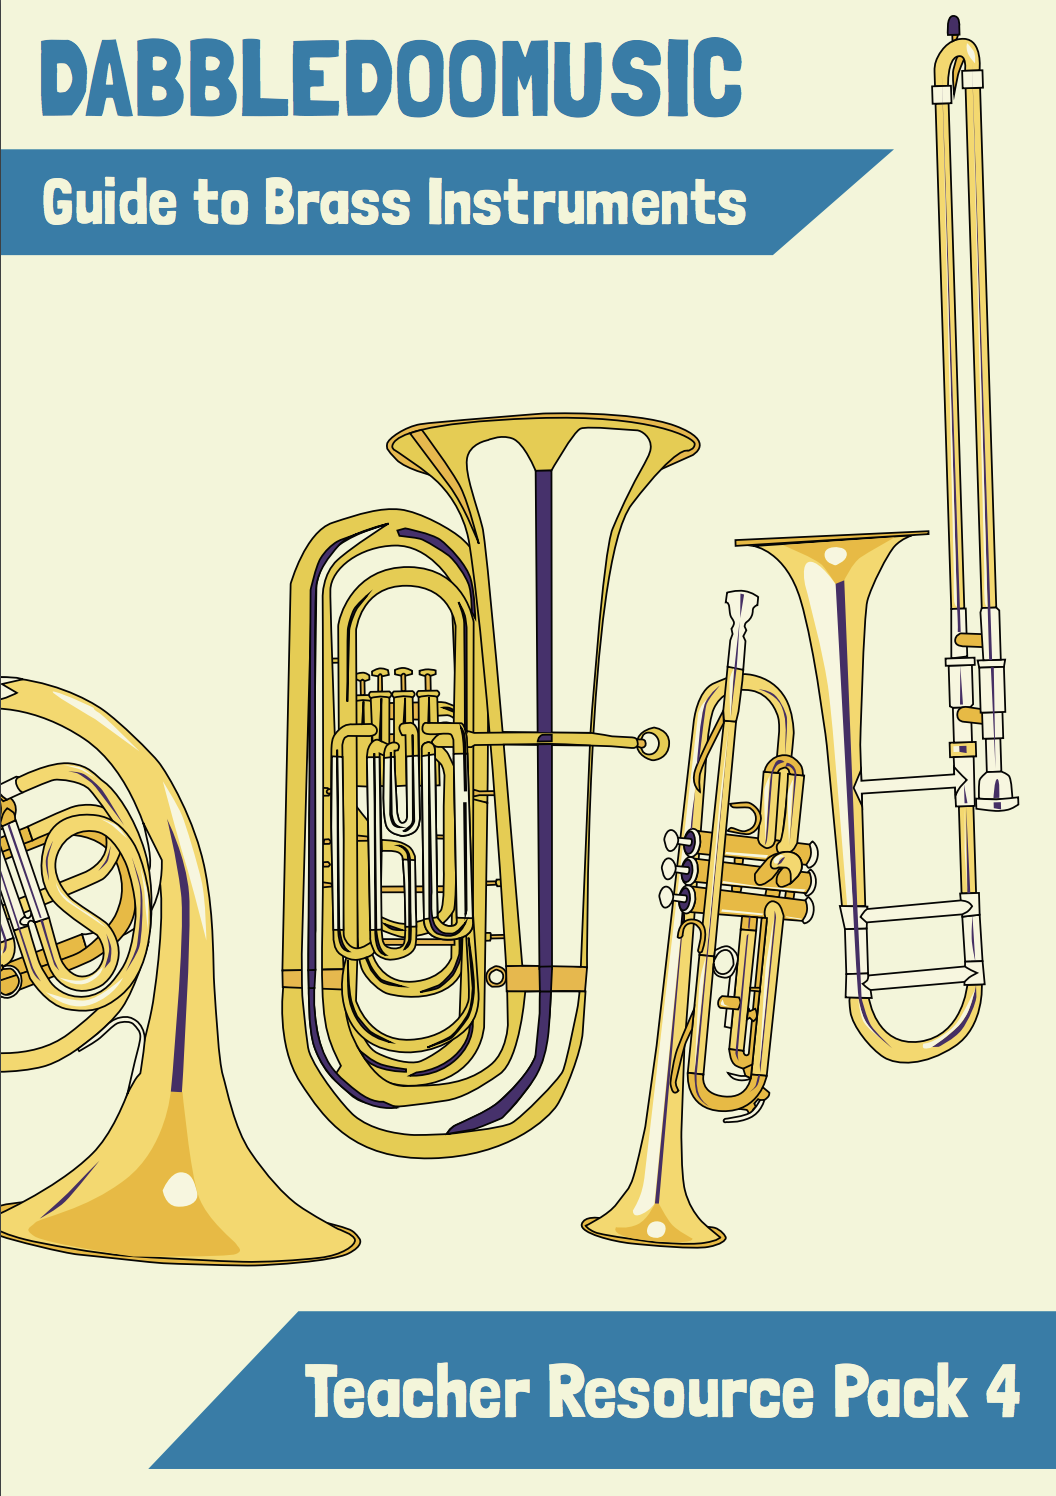 DabbledooMusic Brass resource